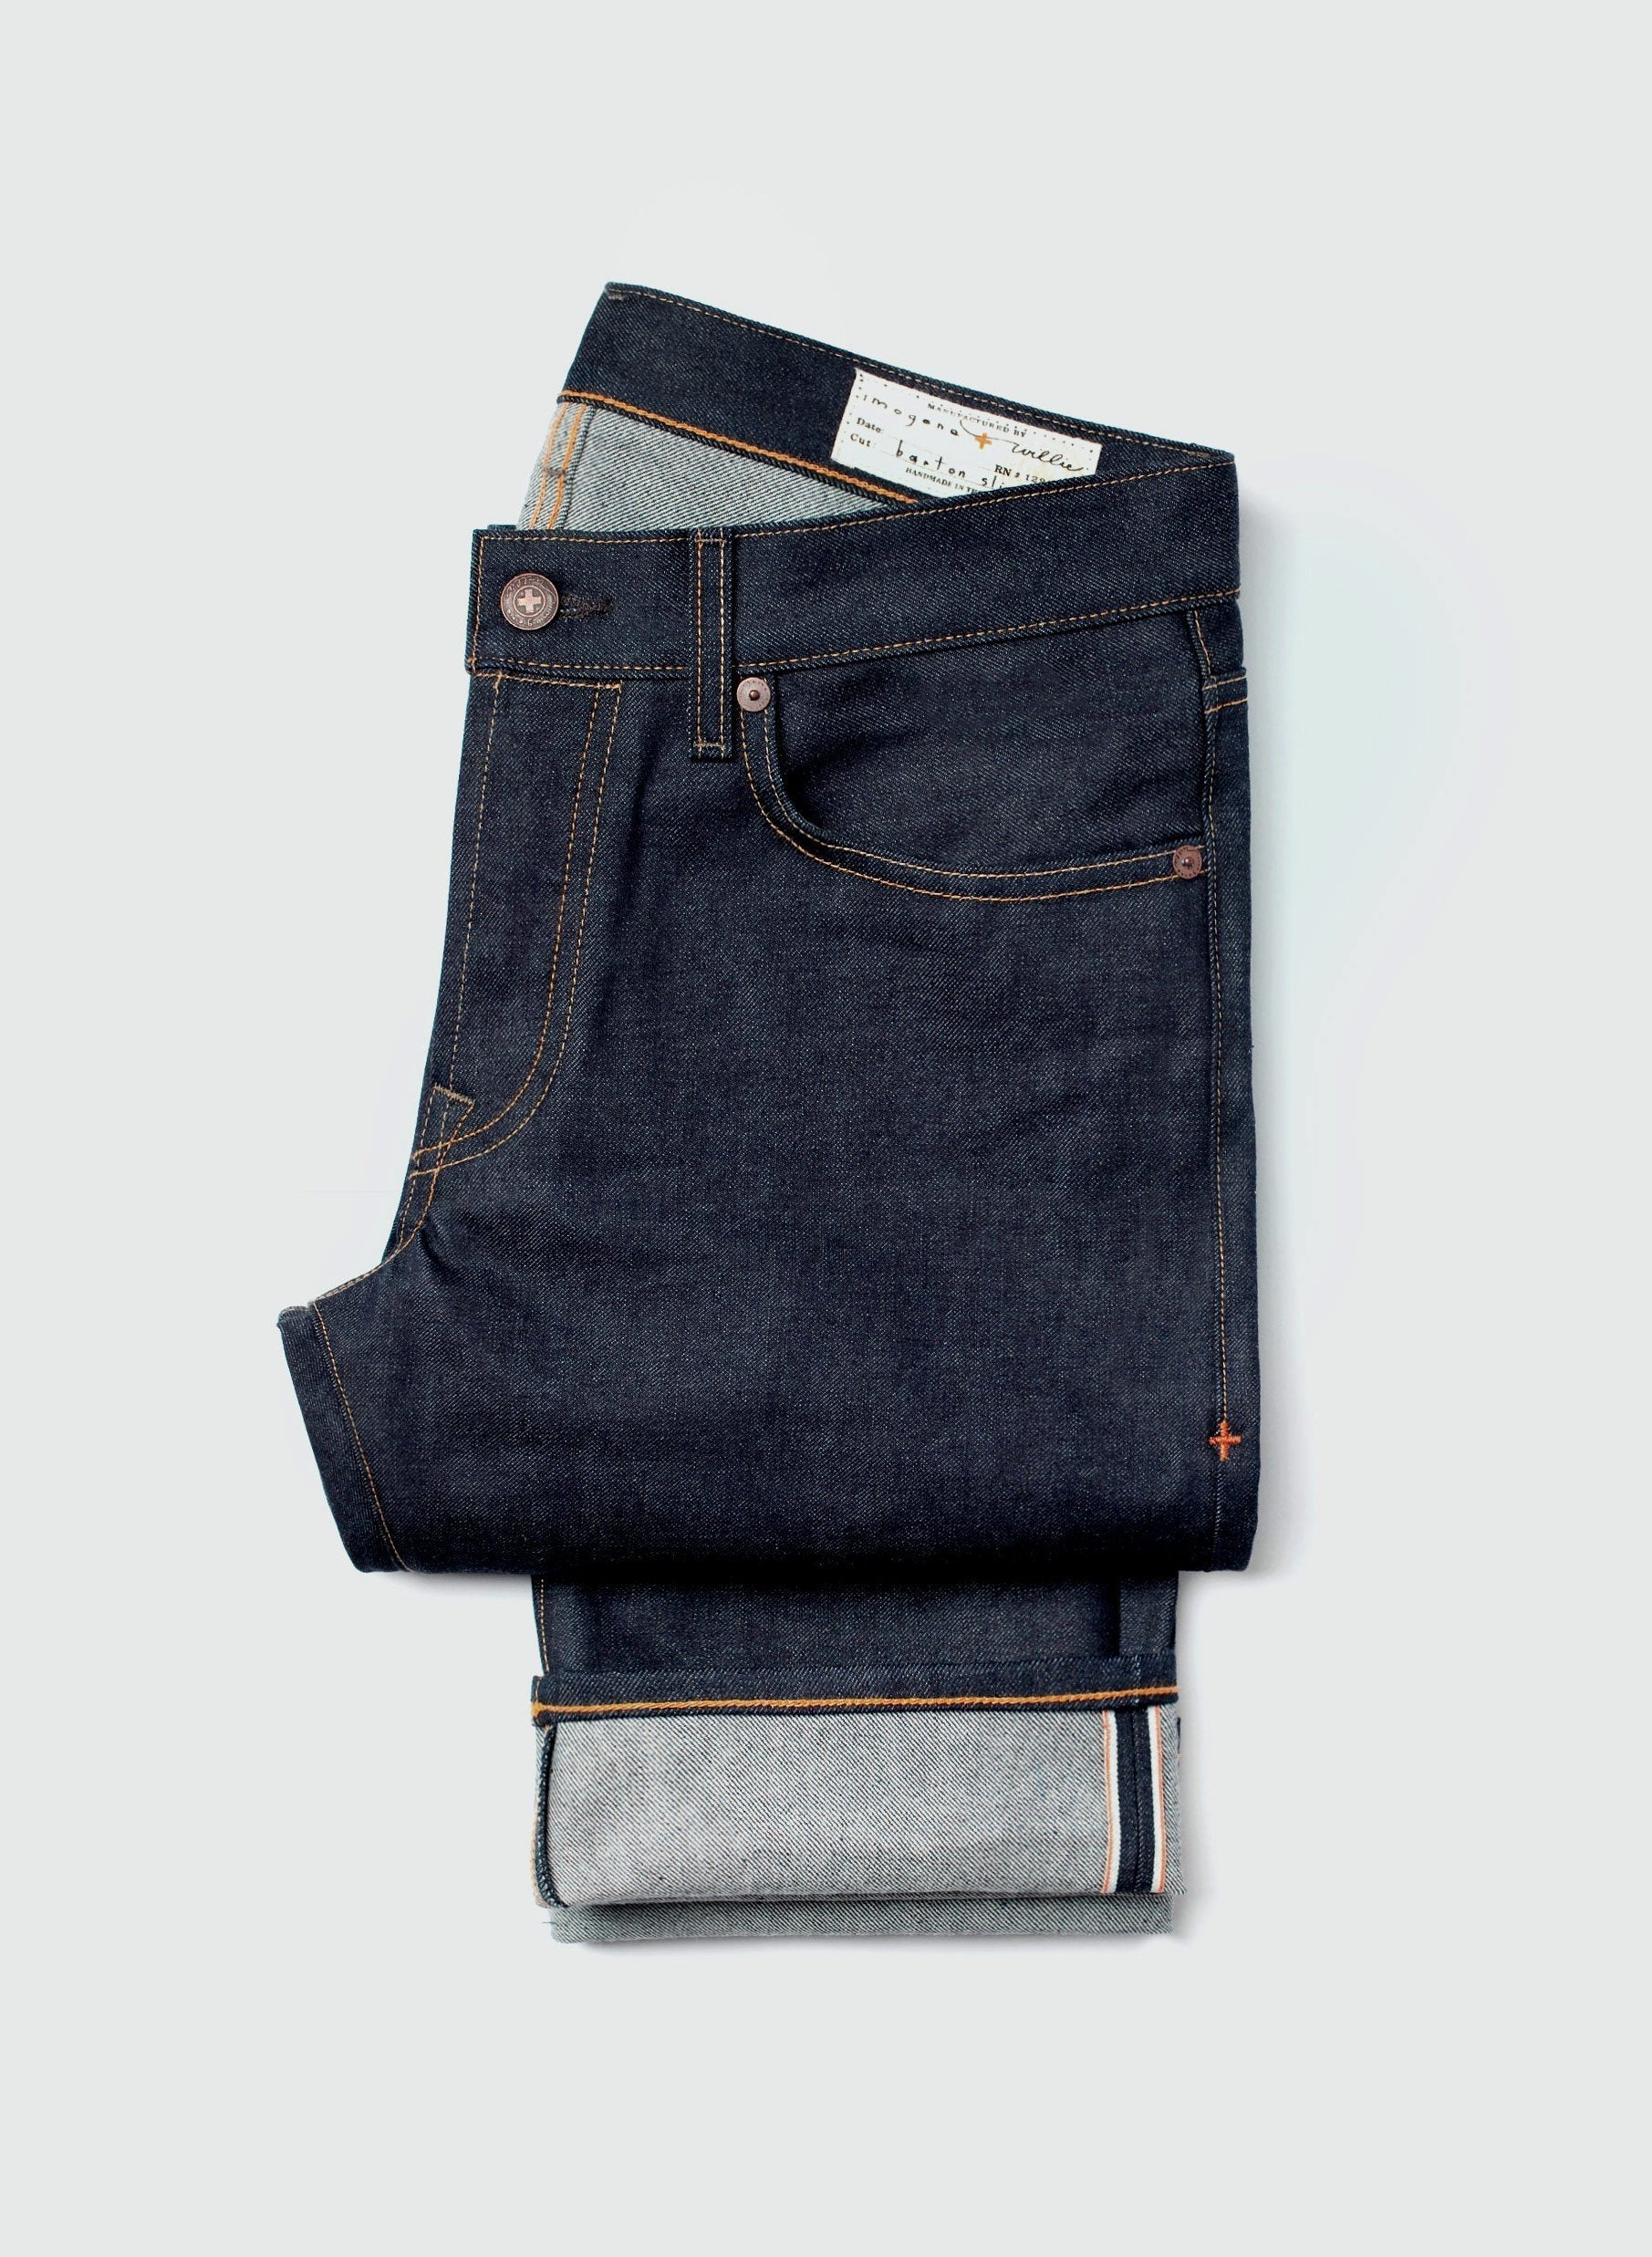 imogene + willie - barton slim indigo rigid